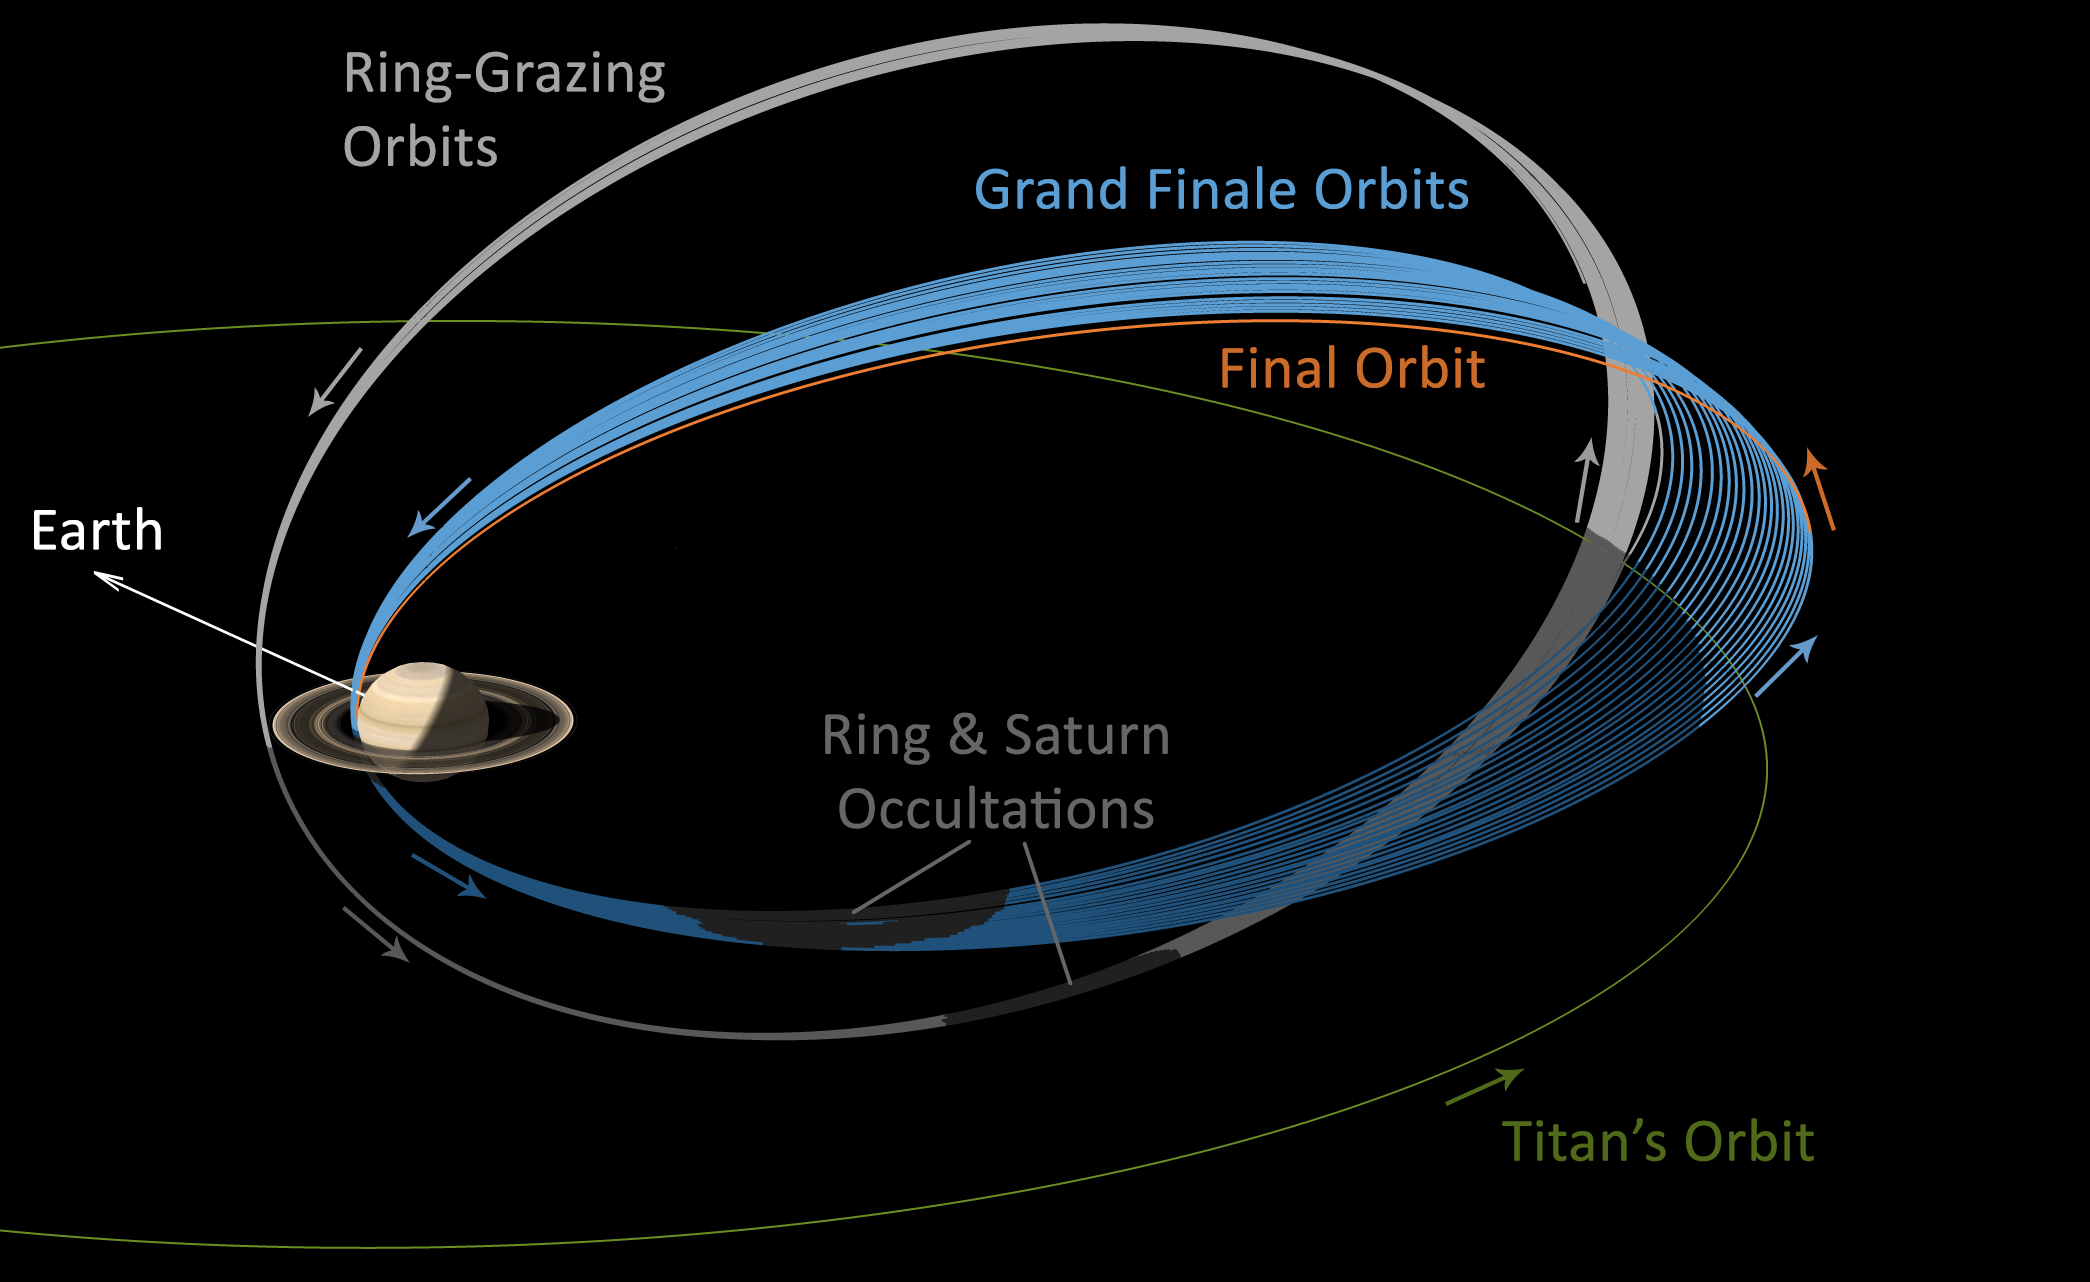 Cassini final orbits petal plot